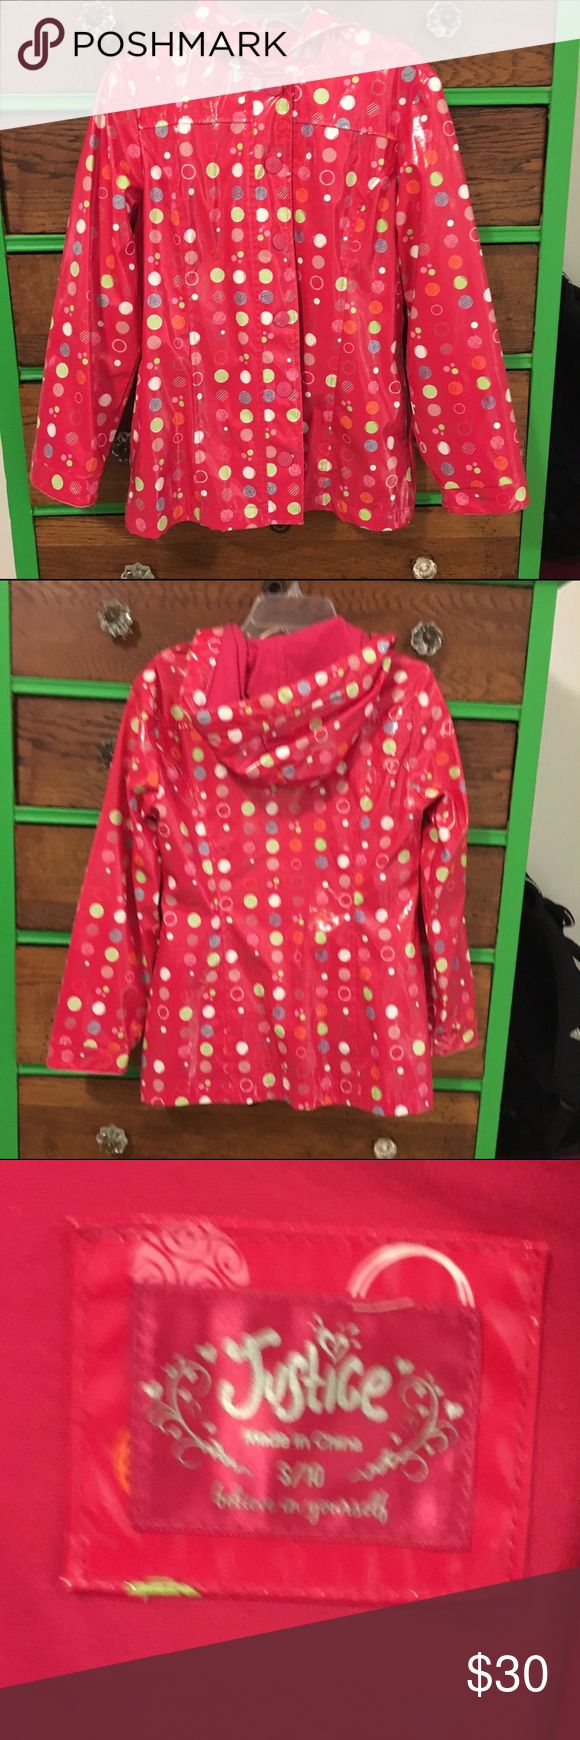 Girls Justice Rain jacket Super cute rain jacket from justice. Girls size 10. Red with multicolored polka dots on it. Buttons down in the front and has a hood in the back. In great condition. Justice Jackets & Coats Raincoats